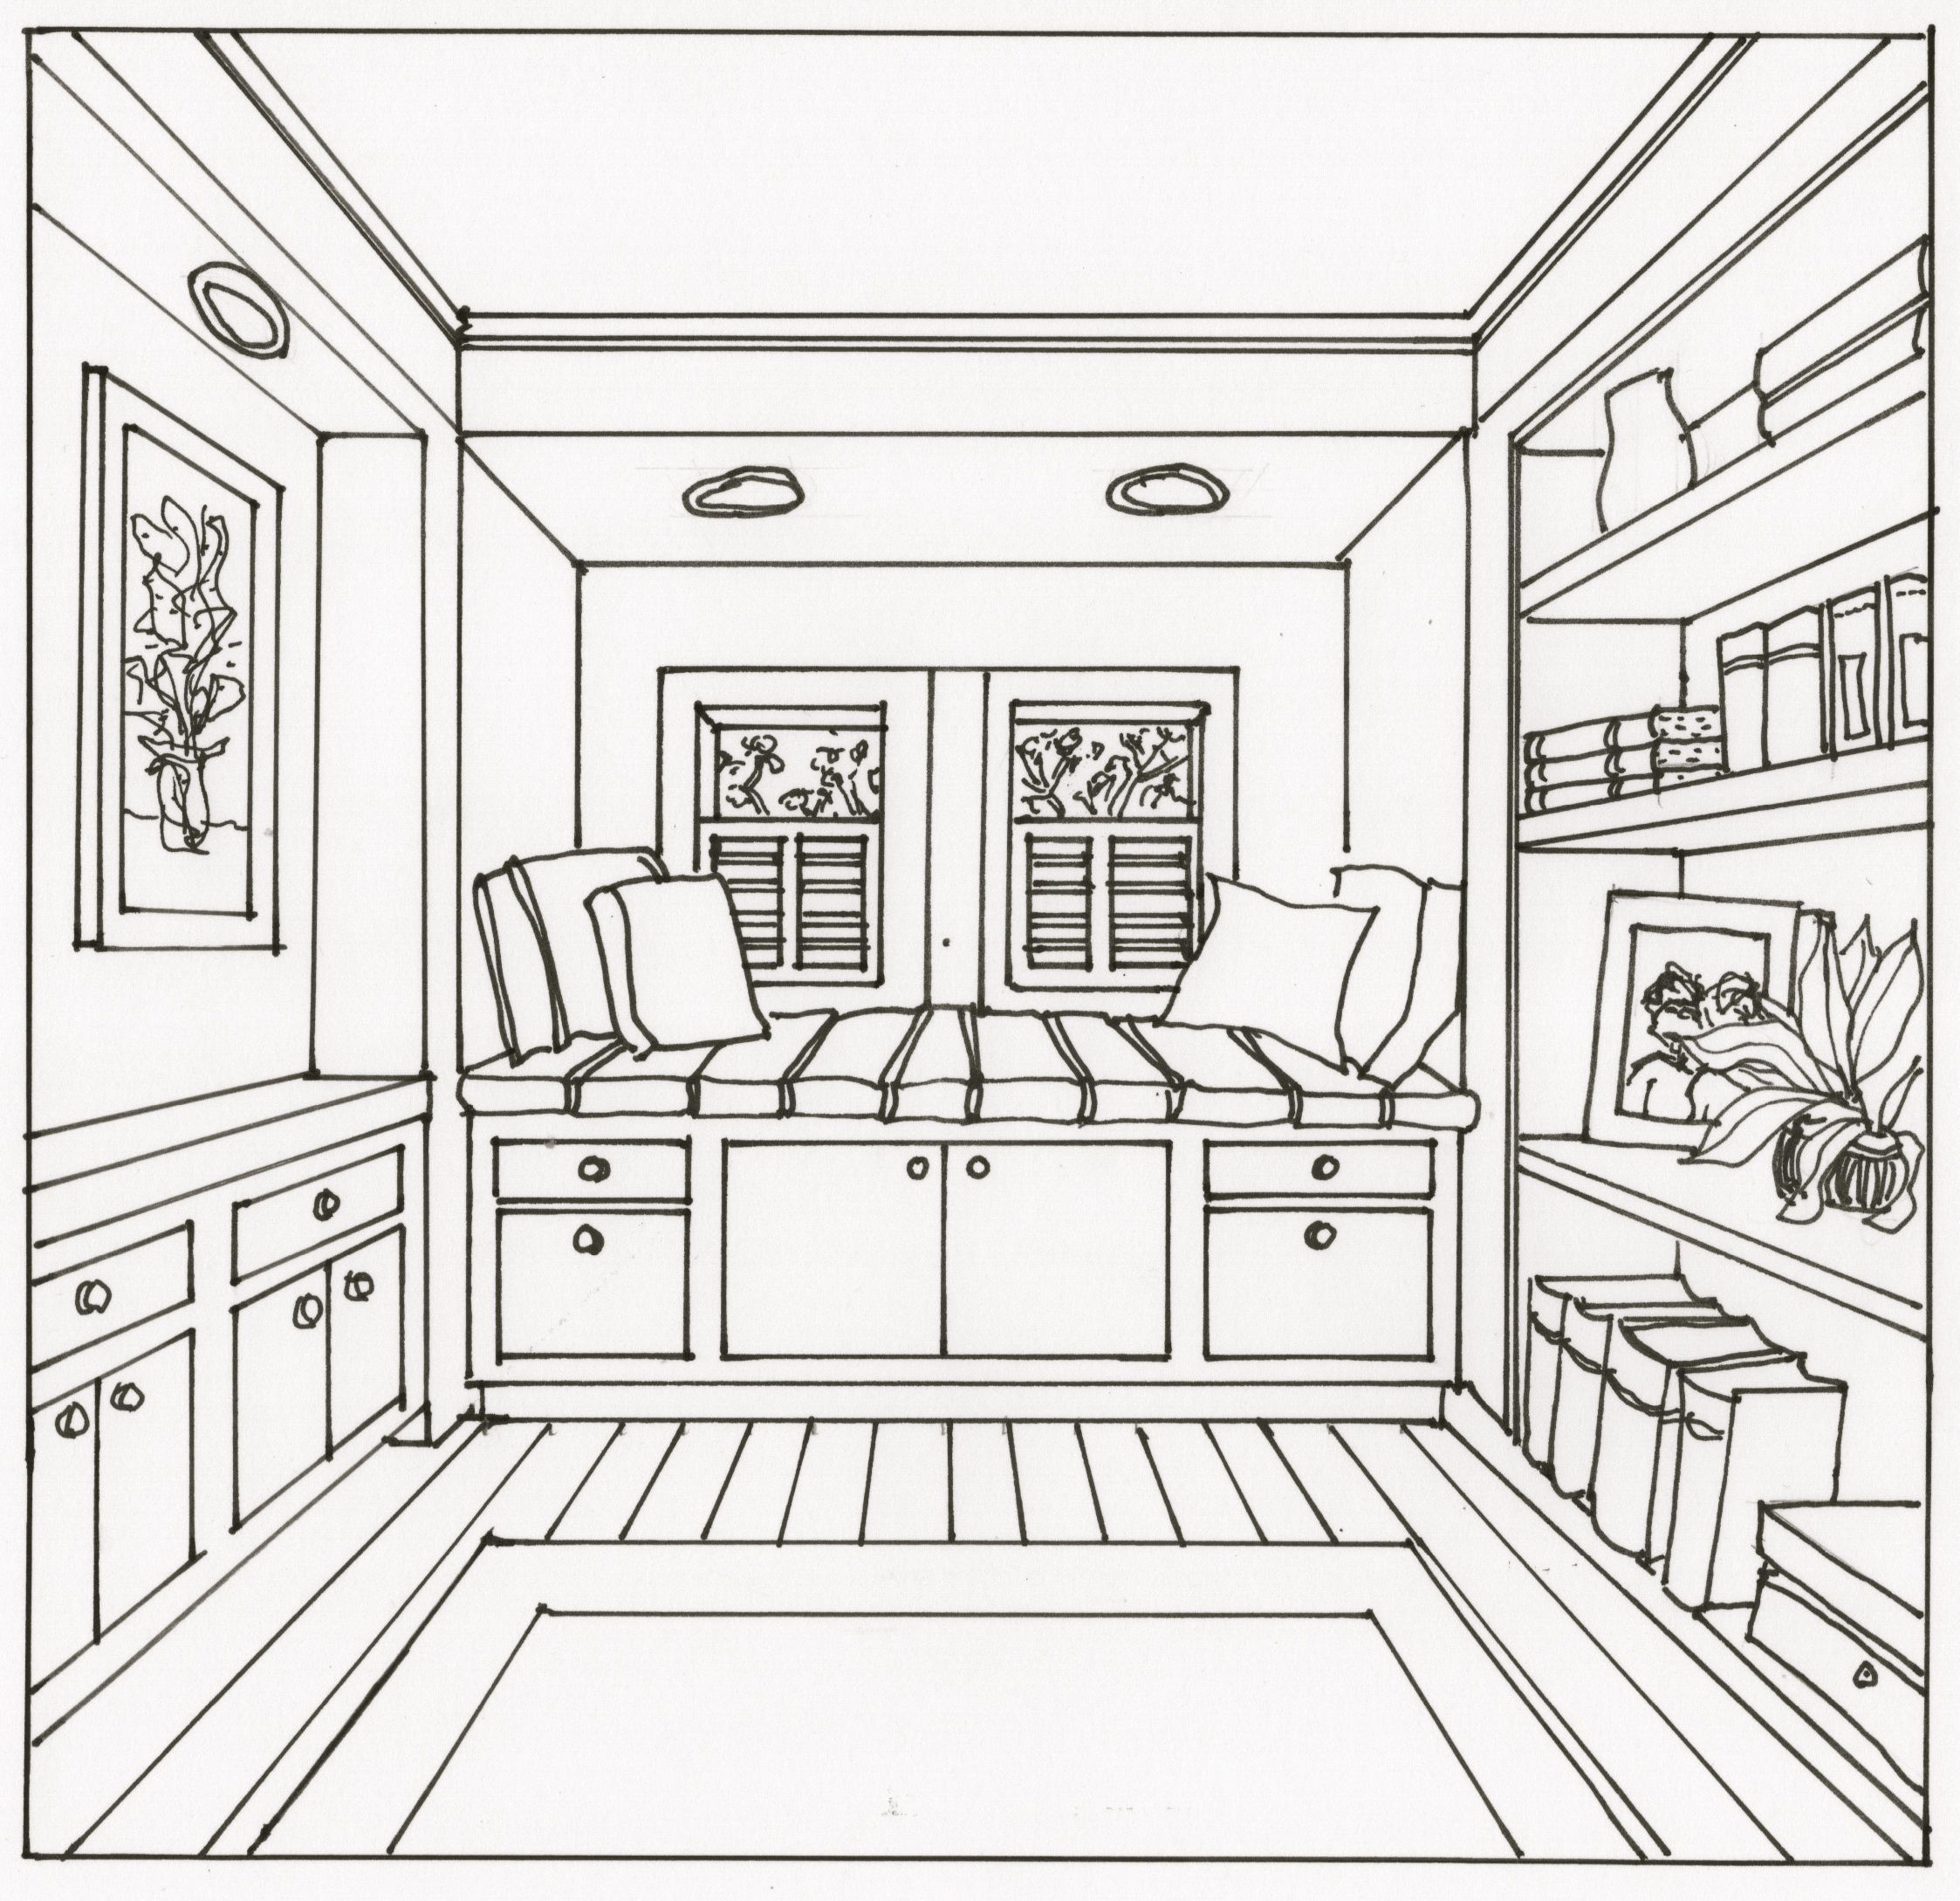 2246x2178 Interior Design Drawings Perspective